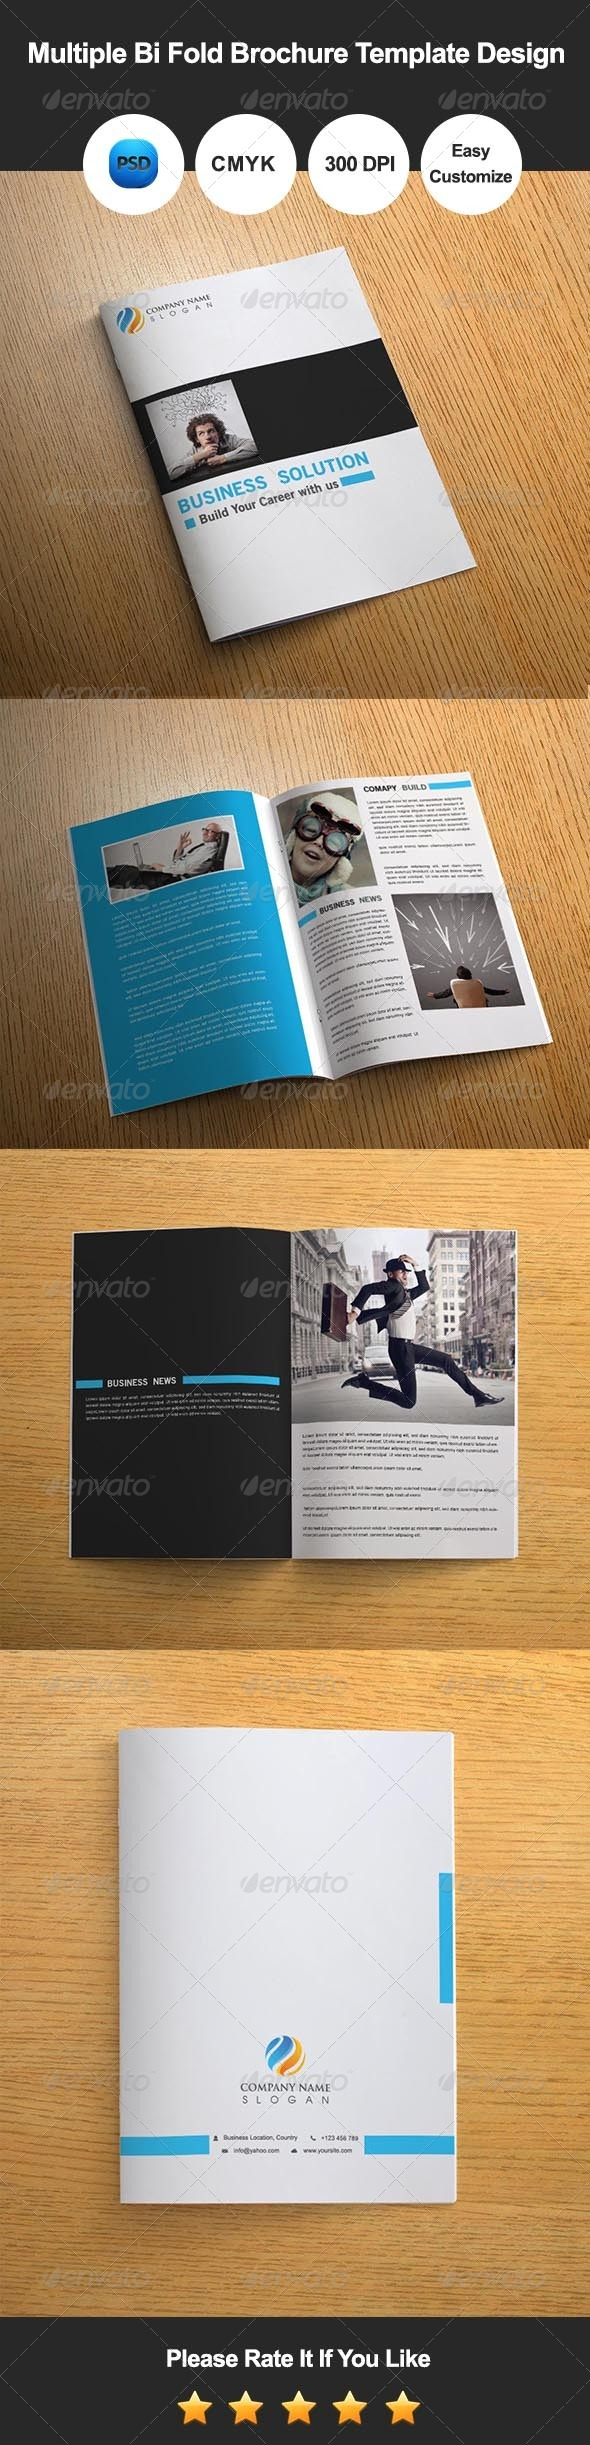 GraphicRiver Multiple Bi Fold Brochure Template Design 8067011